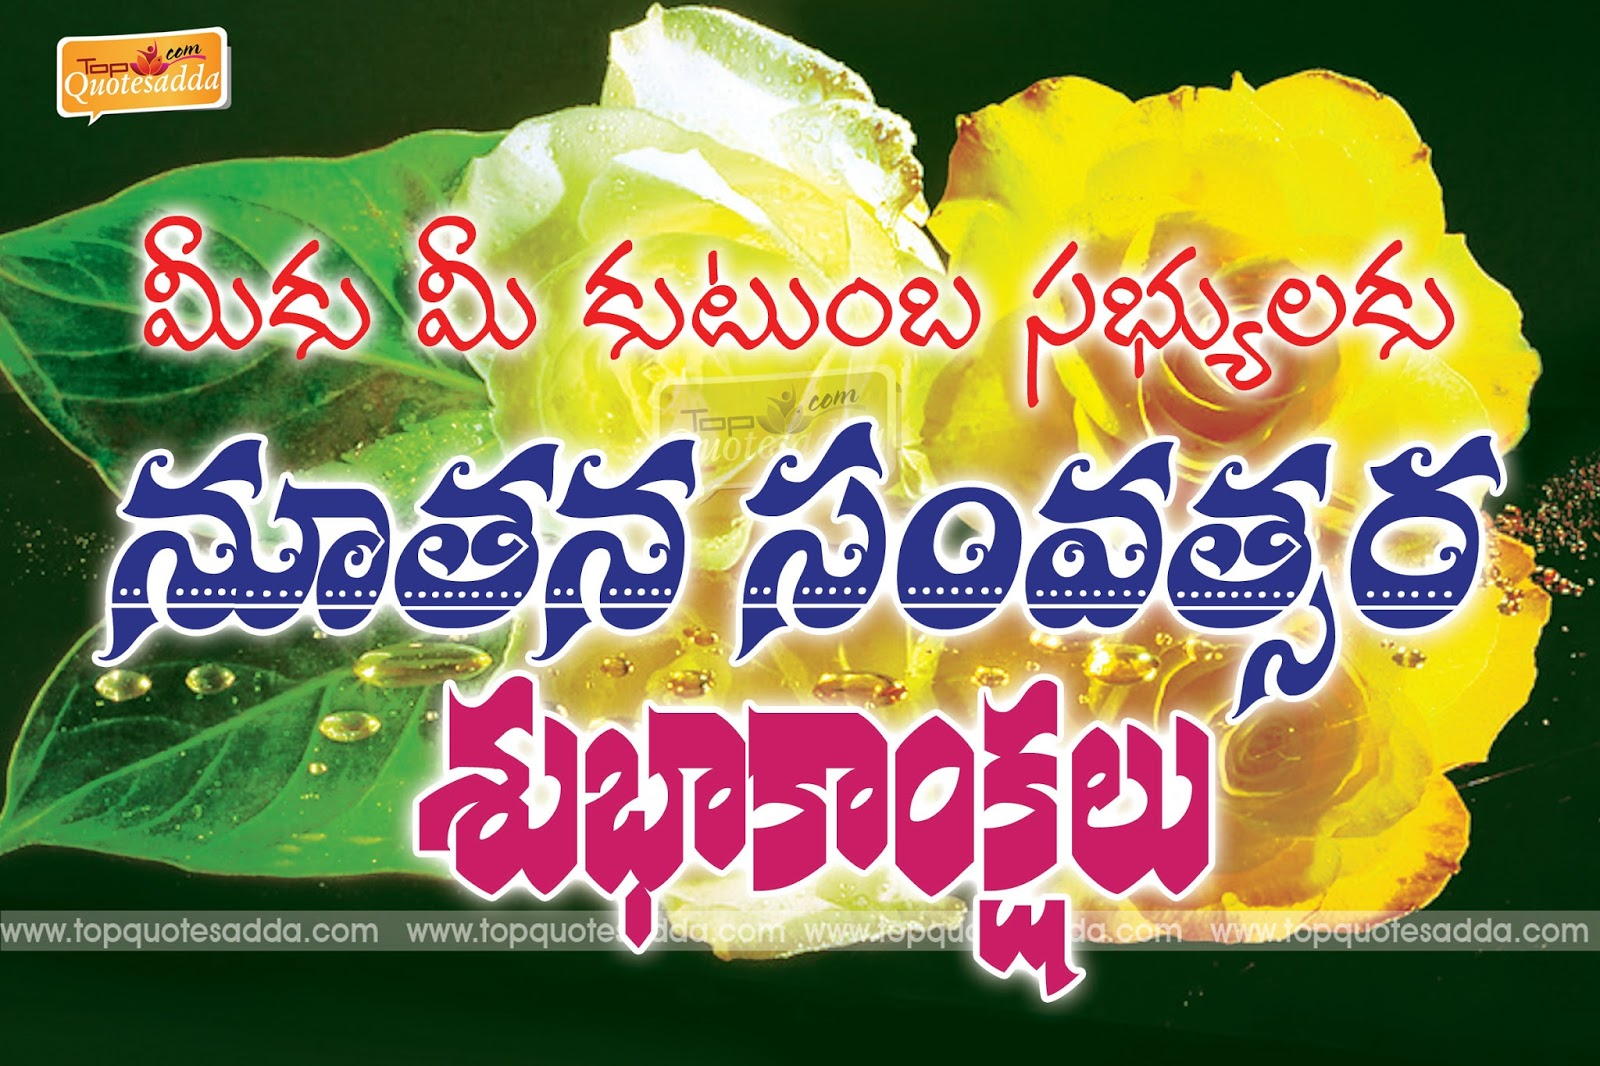 Happy new years greeting cards and wishes quotes topquotesadda happy new year telugu greetings and quotes hd m4hsunfo